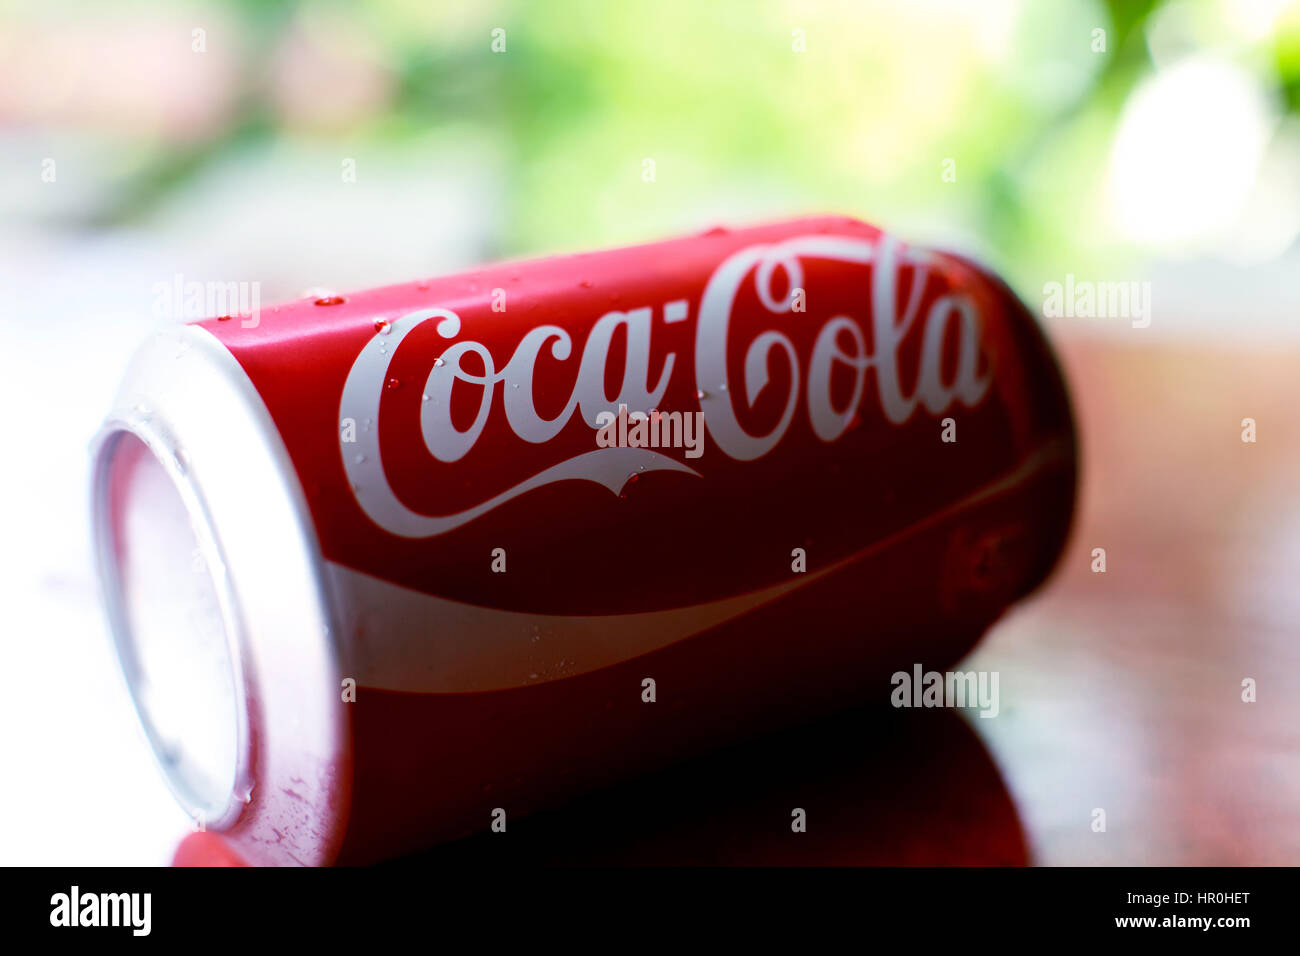 SOFIA, BULGARIA -June 14, 2016. A can of Coca Cola soft drinks, close-up view ovet the soft green summer background. - Stock Image